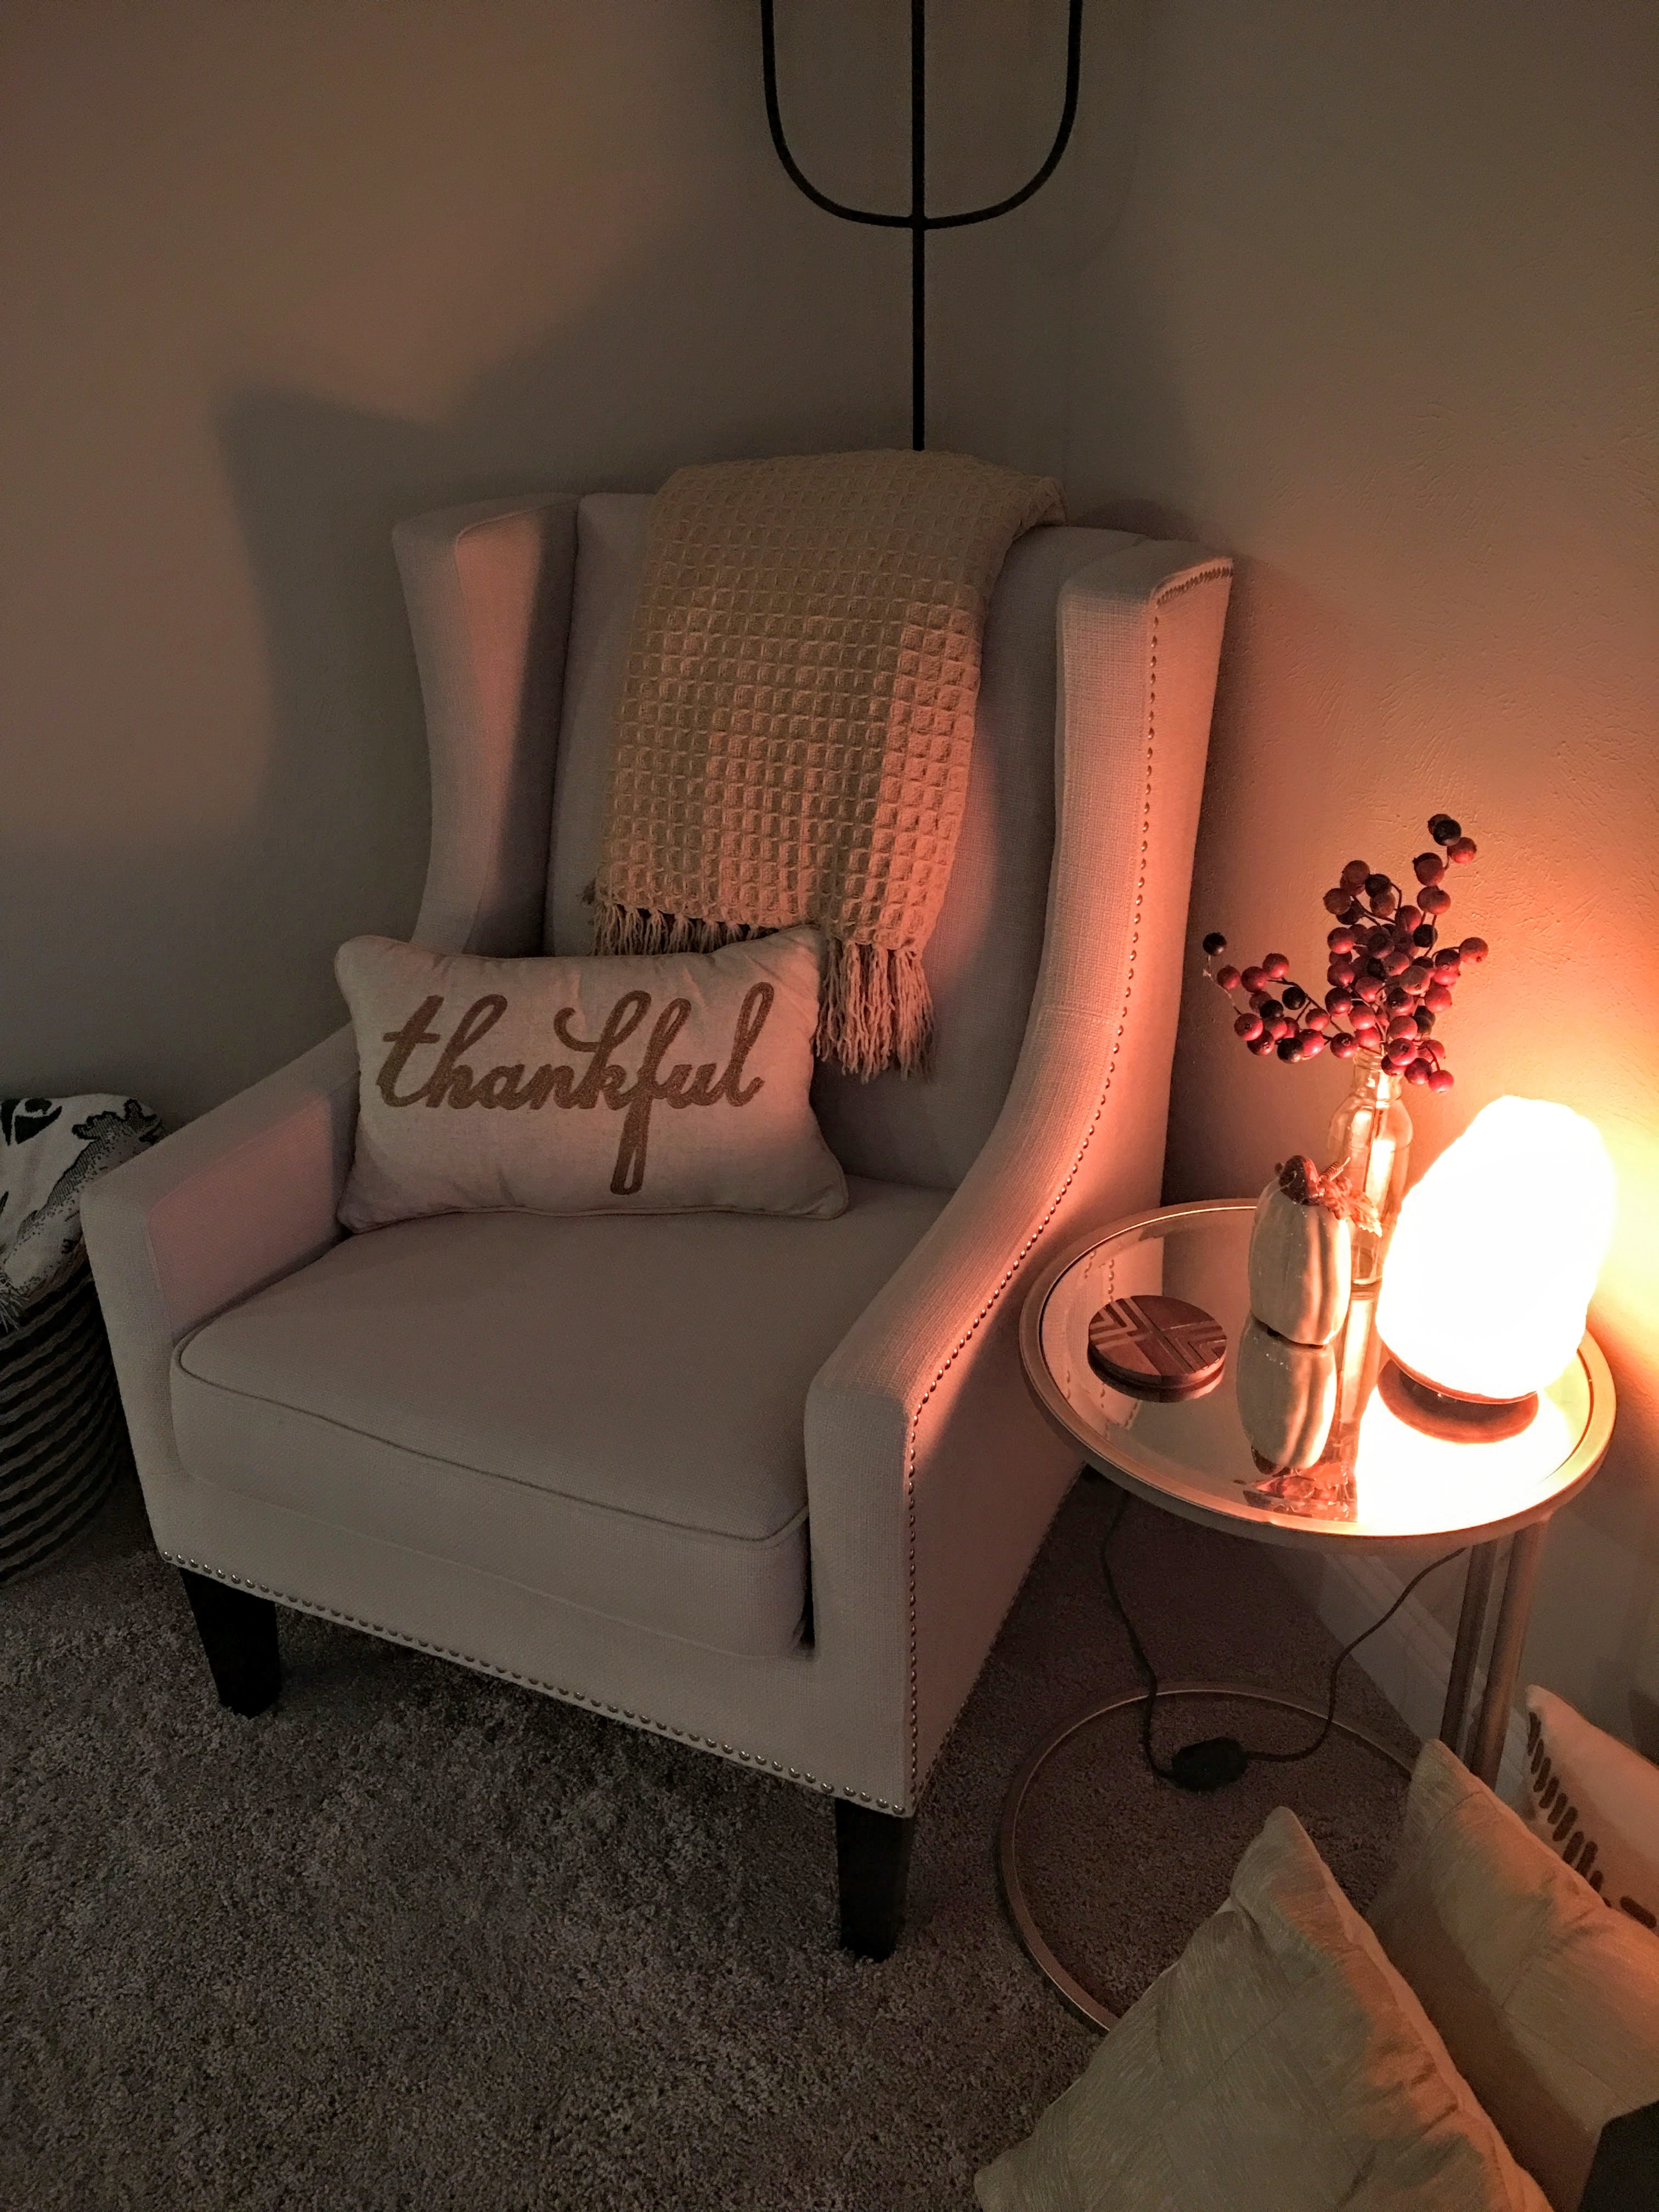 Salt-lamp-as-a-marvelous-addition-to-a-space-decorated-in-beige-tones